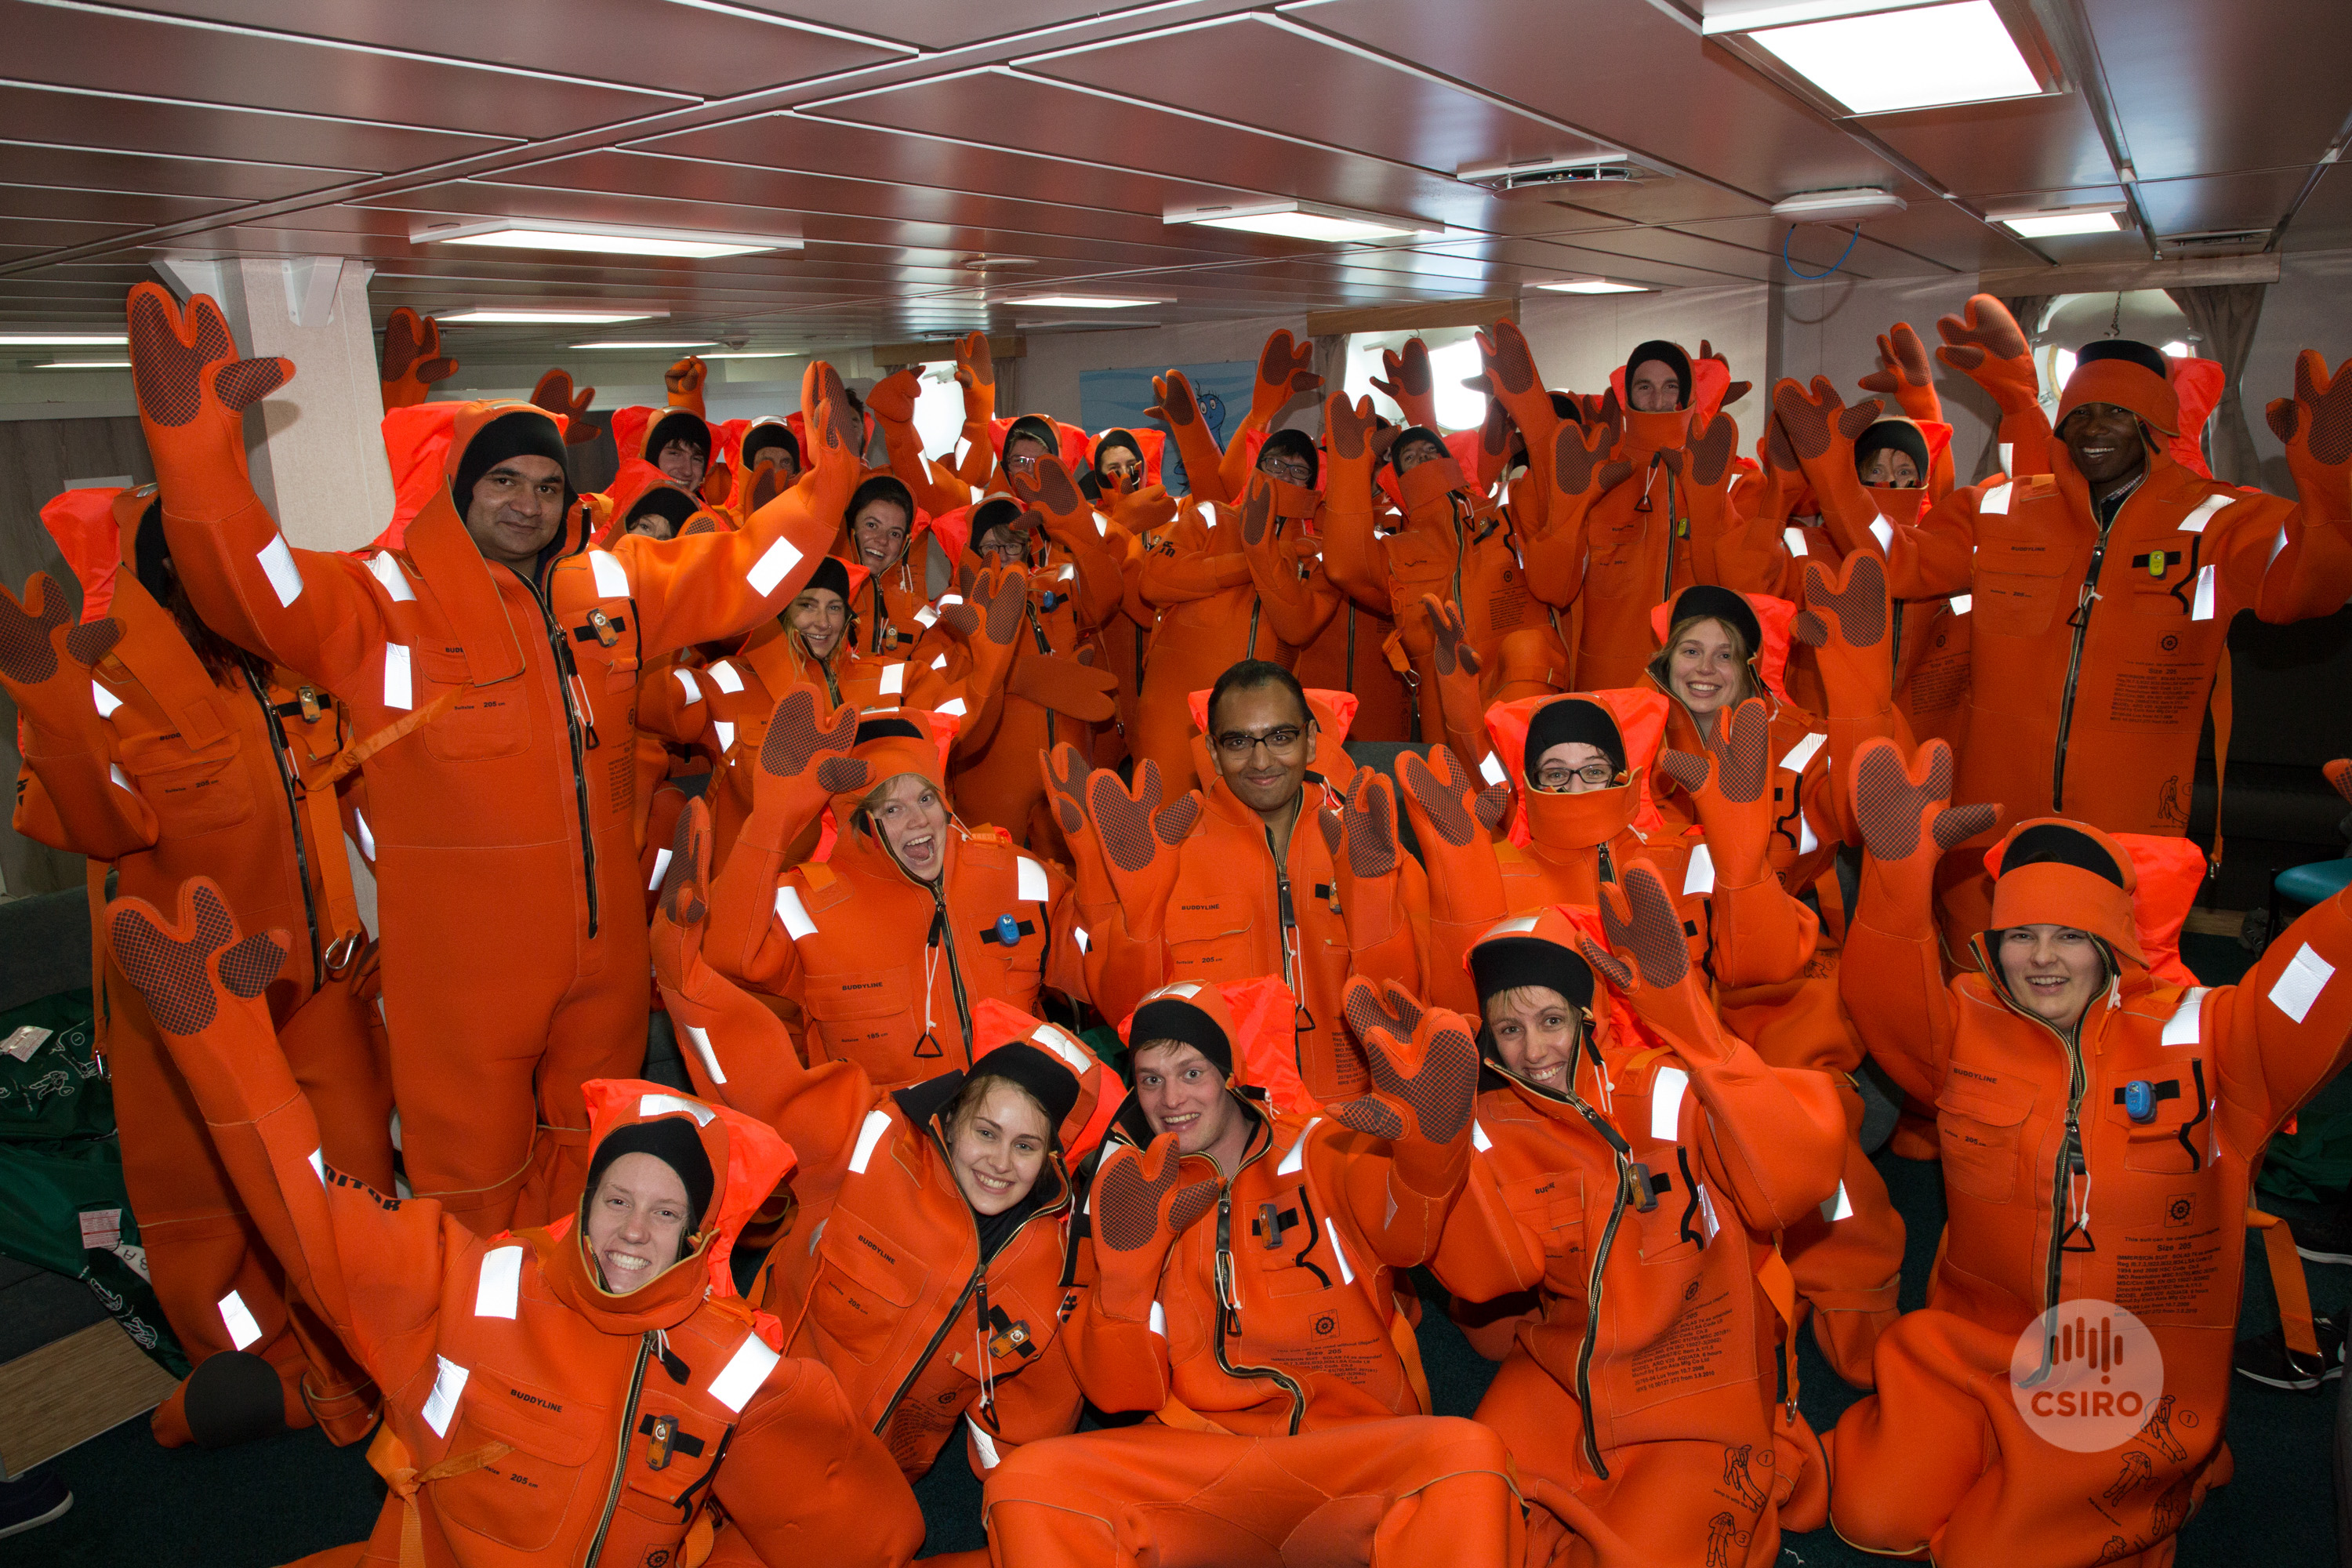 Students in immersion survival suits.